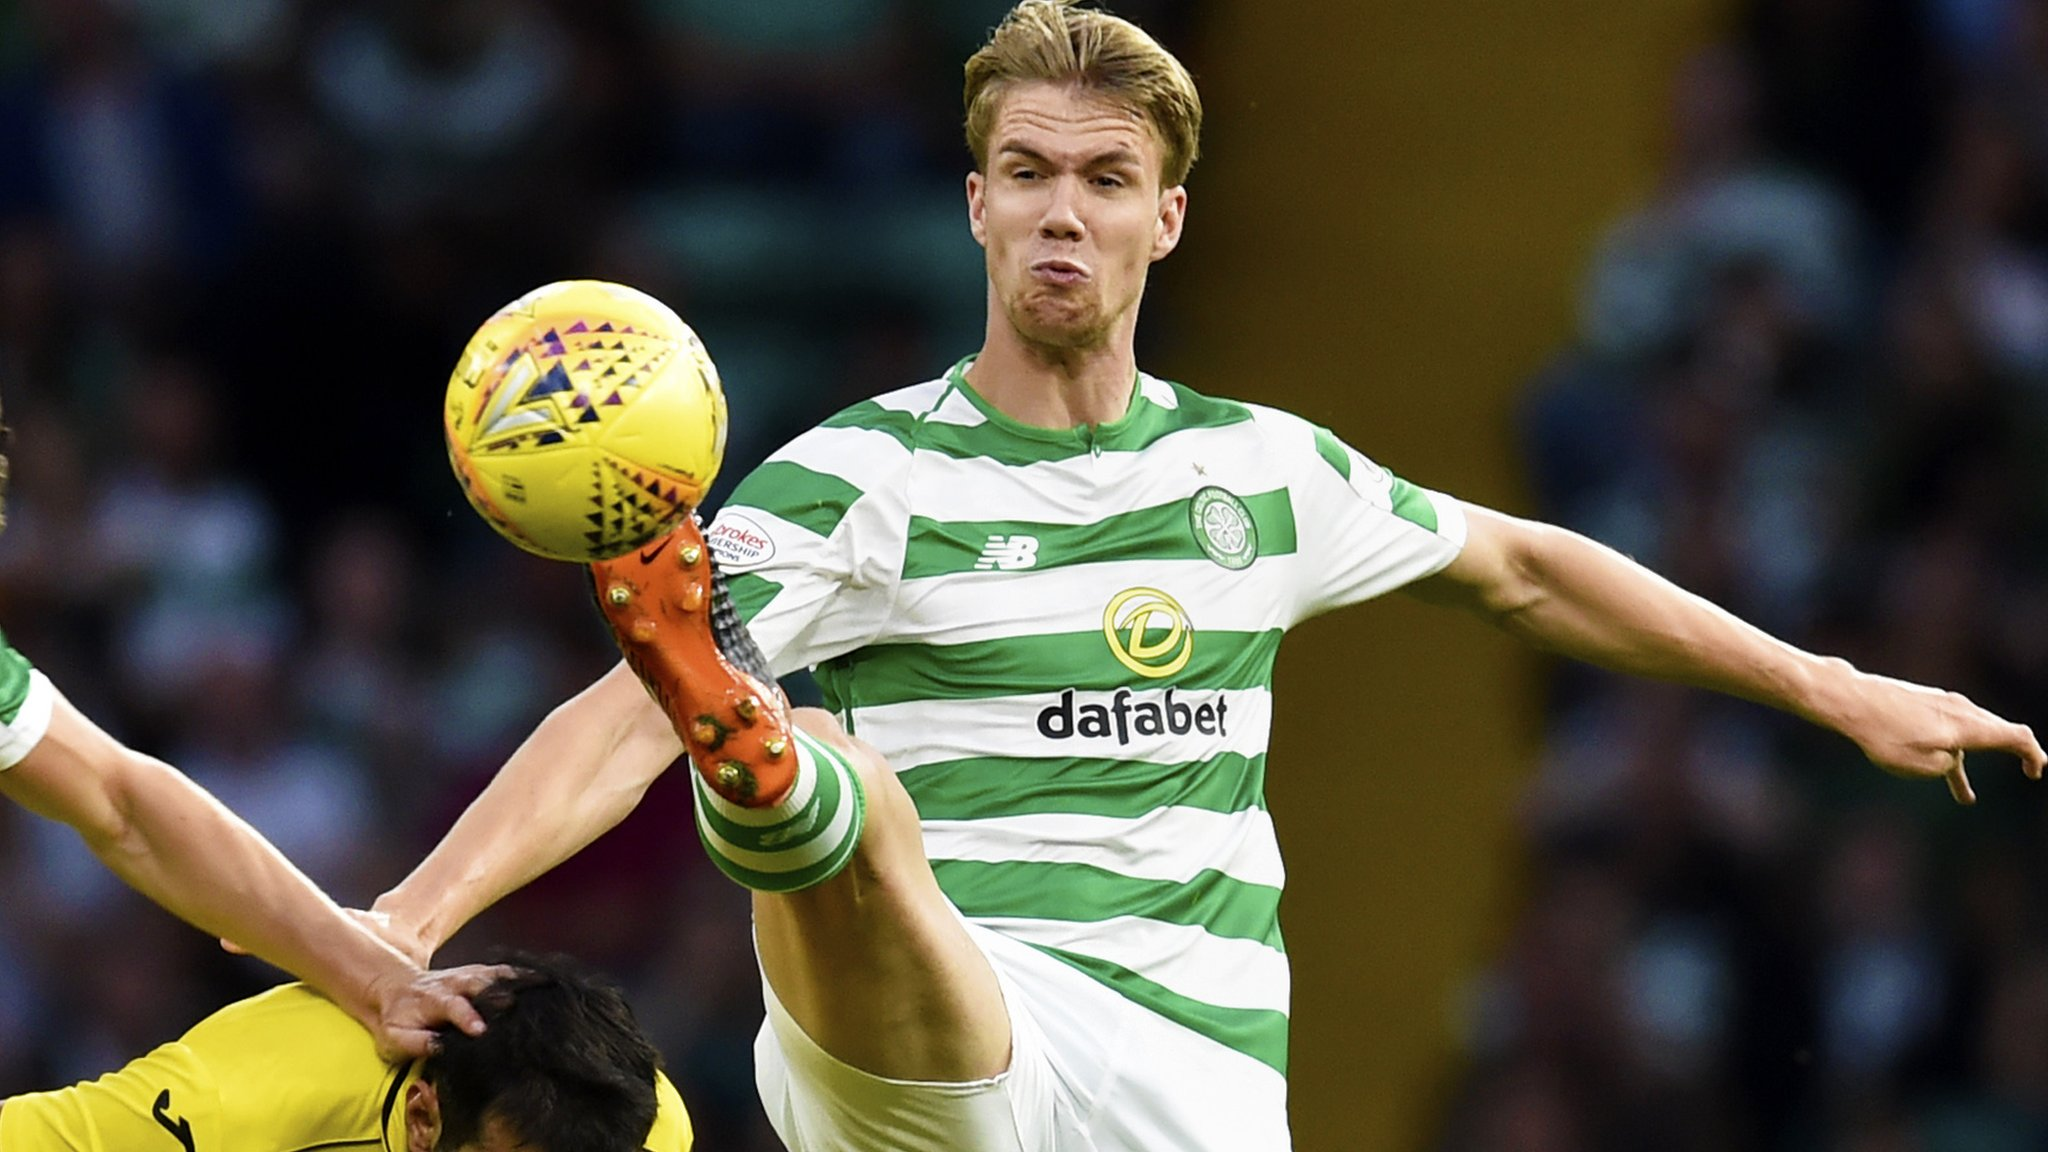 Rosenborg a Champions League threat - Celtic's Ajer